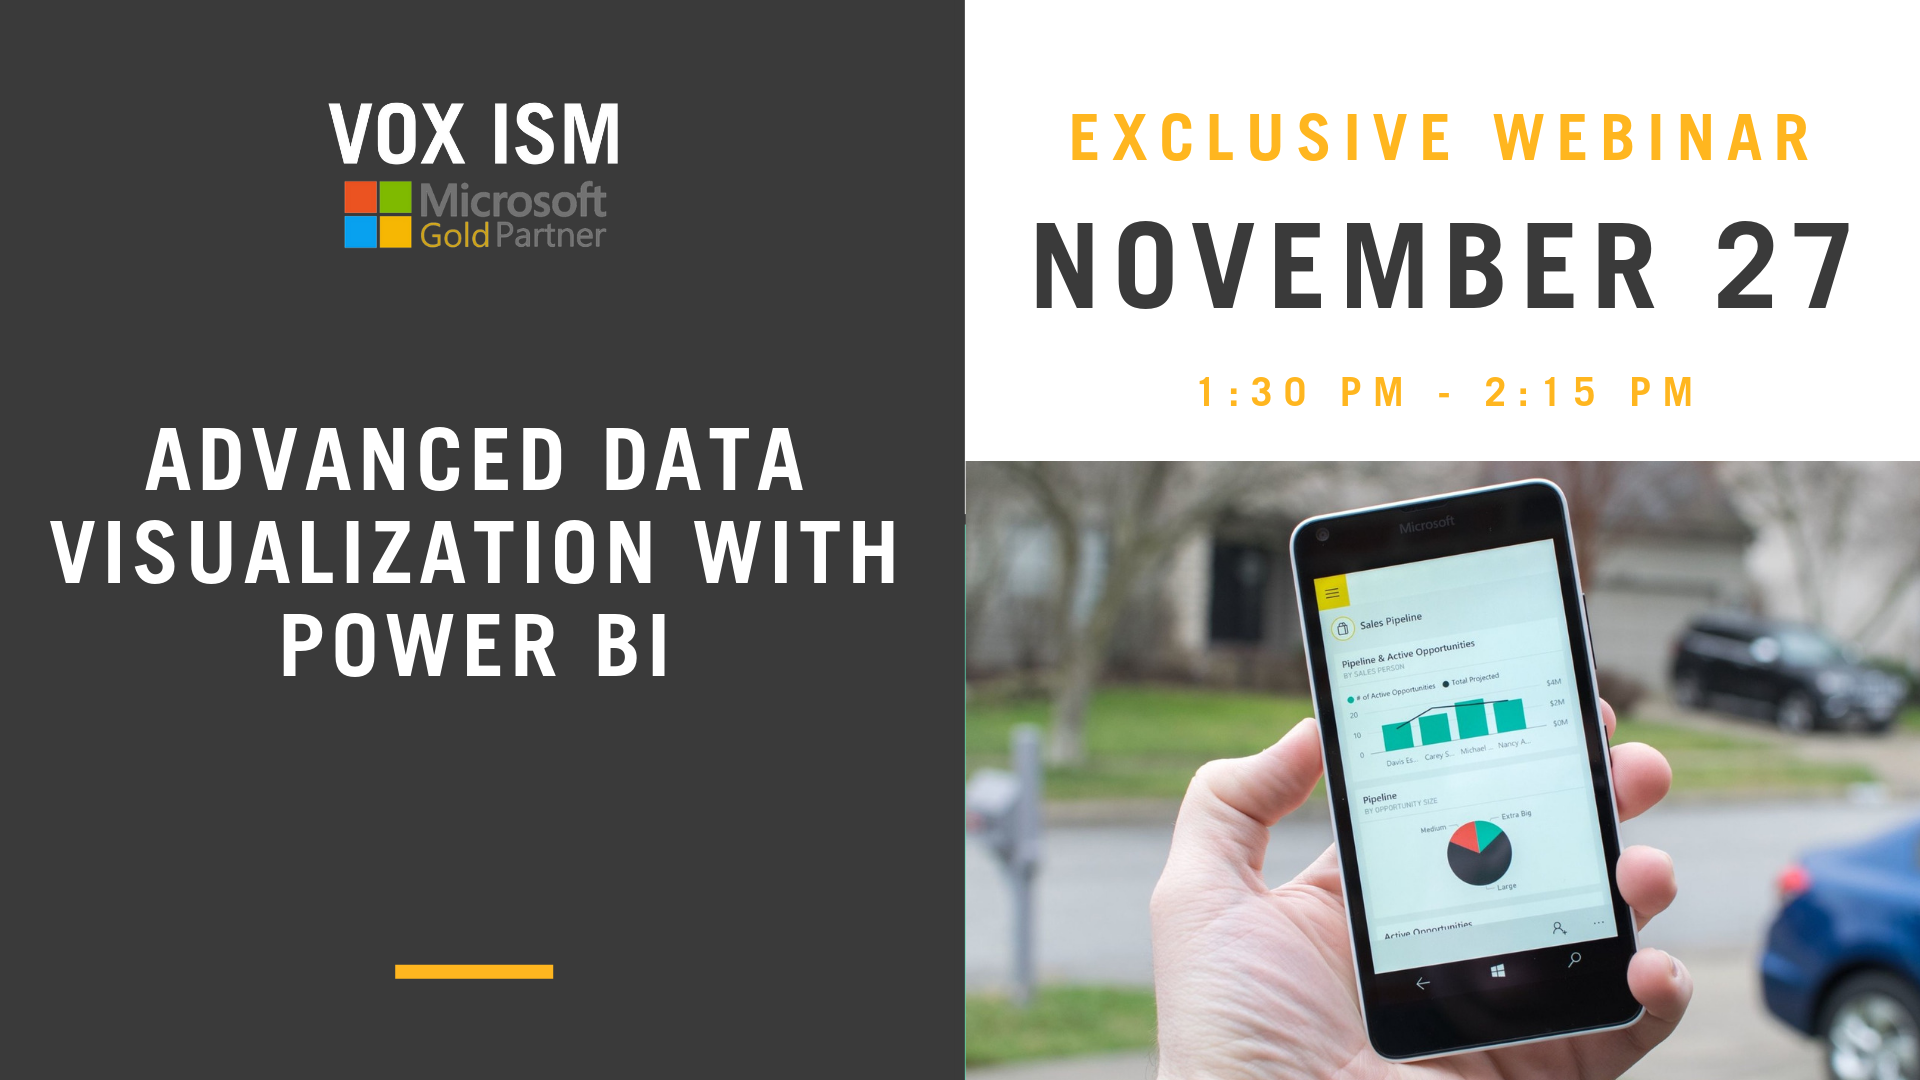 Advanced Data Visualization with Power BI - November 27 - Webinar - VOX ISM